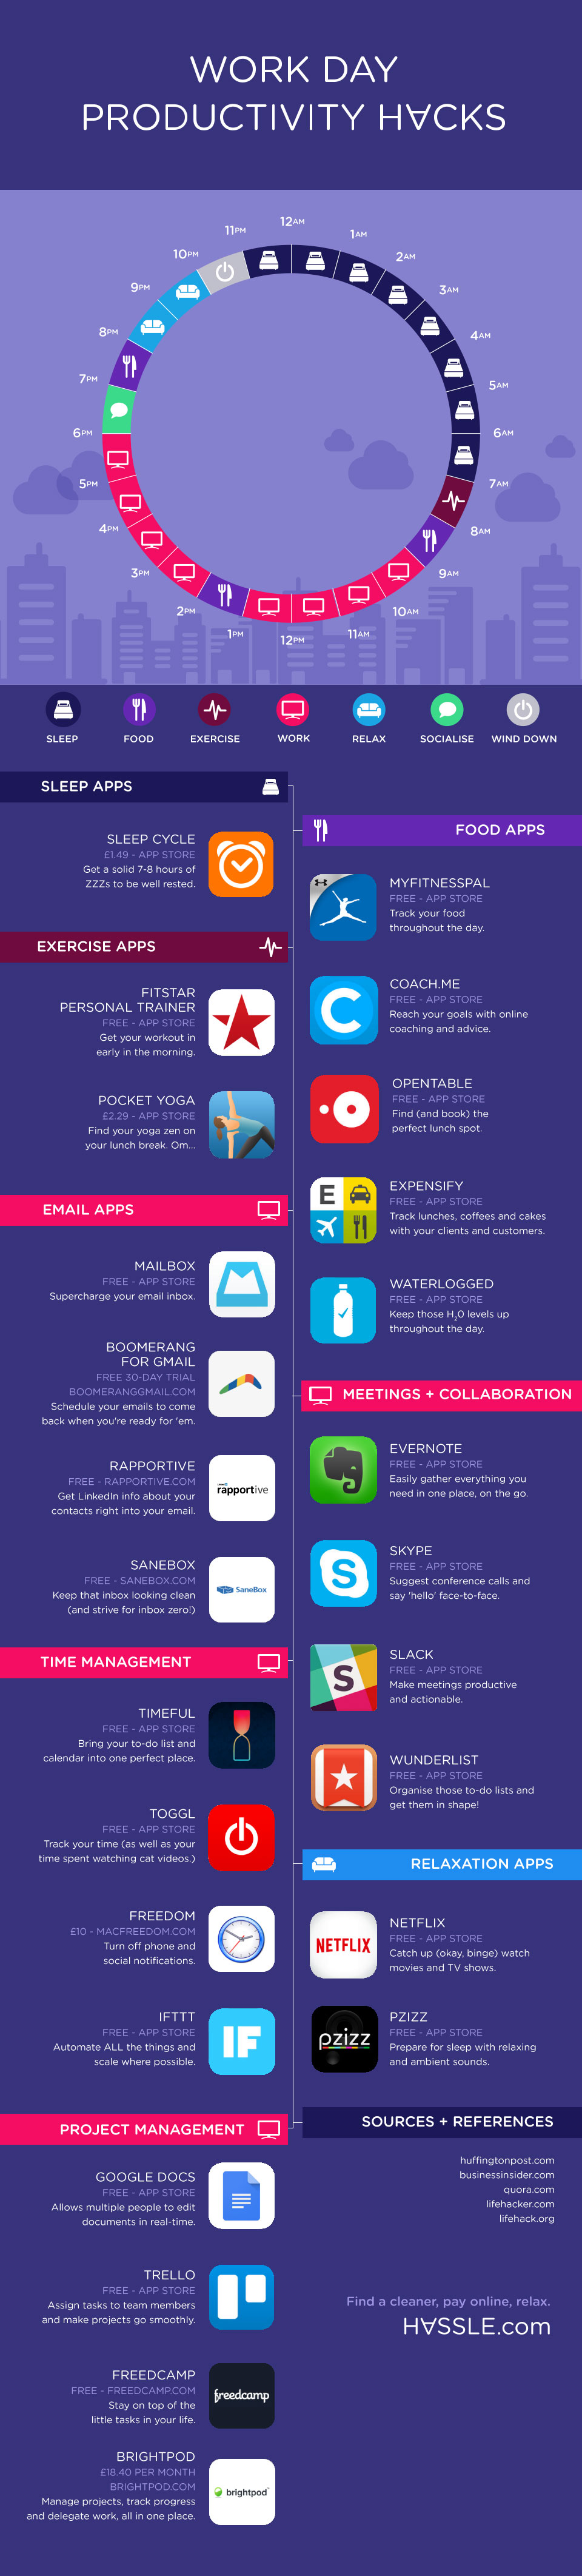 8 Types Of Apps To Be Productive